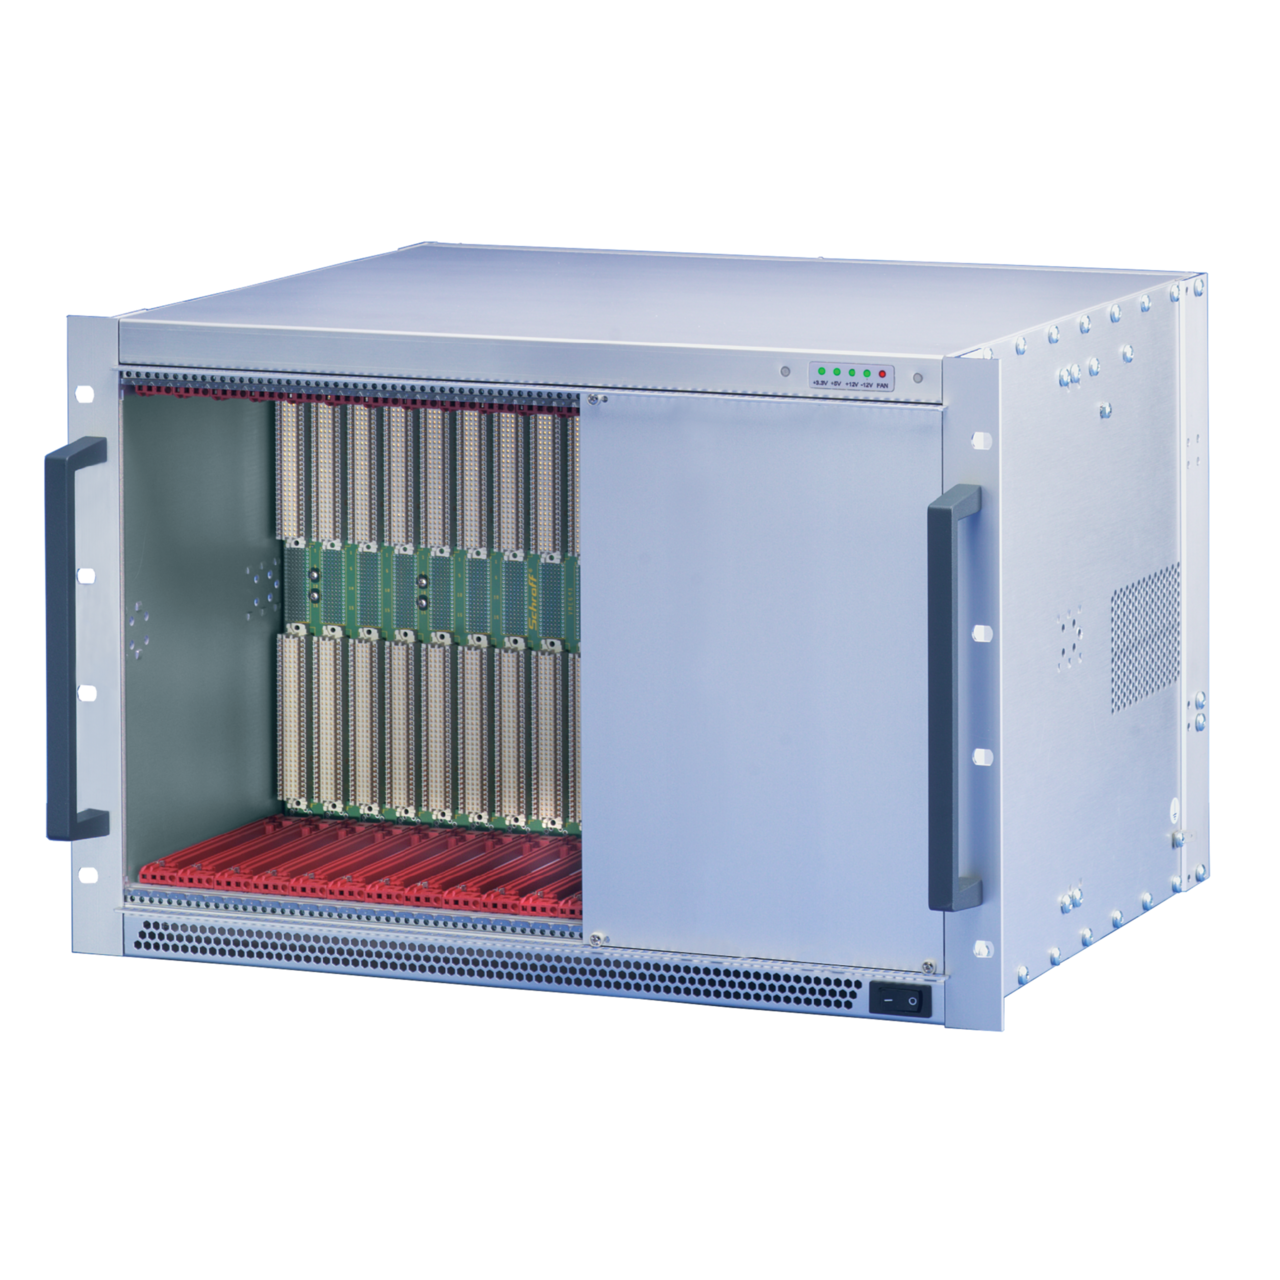 Image for VME64x-based systems 7 U, 12 slot, with rear I/O from nVent SCHROFF | Europe, Middle East, Africa and India